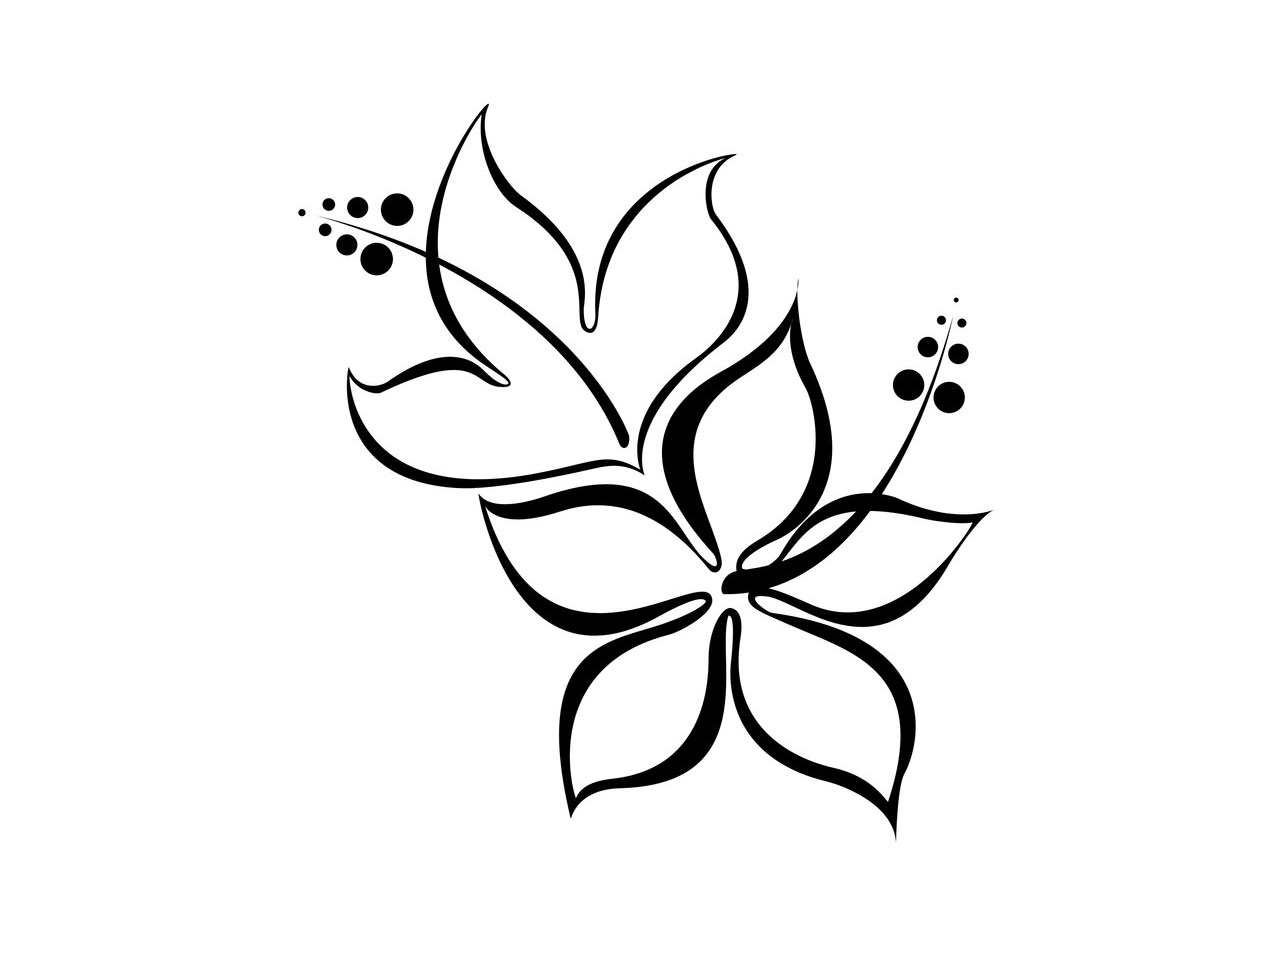 1280x960 Simple Drawing Designs Flowers Cool Easy Flower Designs Draw